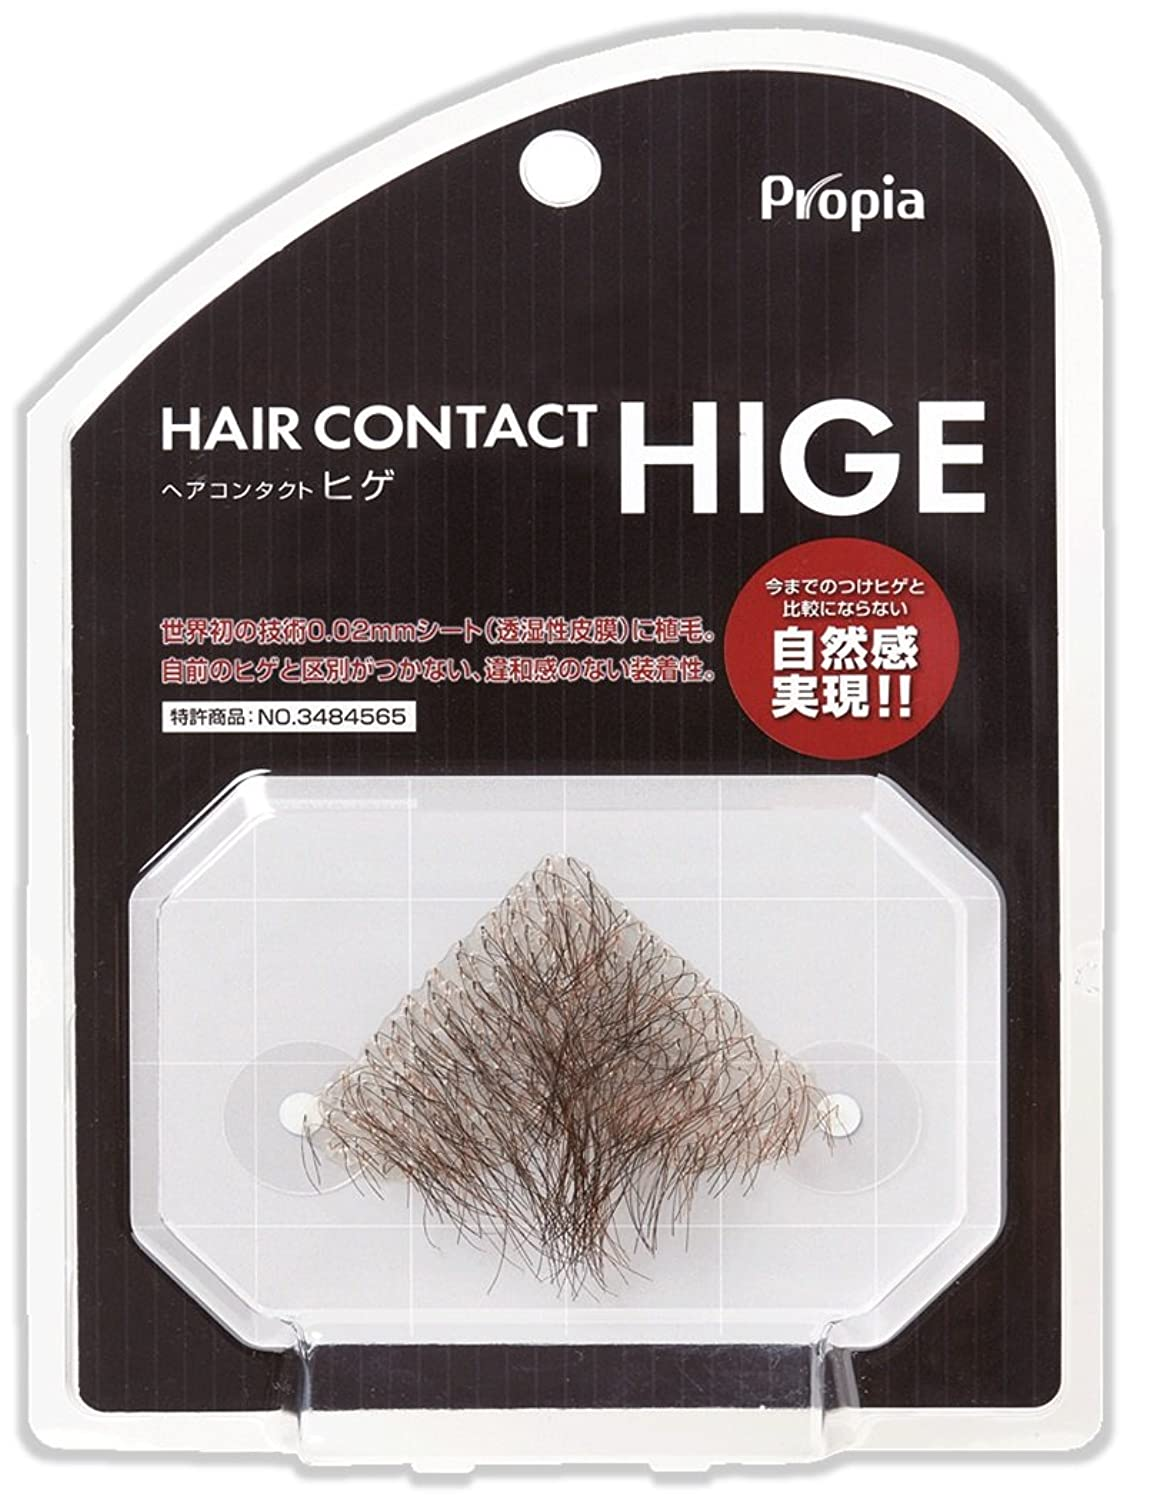 HAIR CONTACT HIGE アゴヒゲ フジ